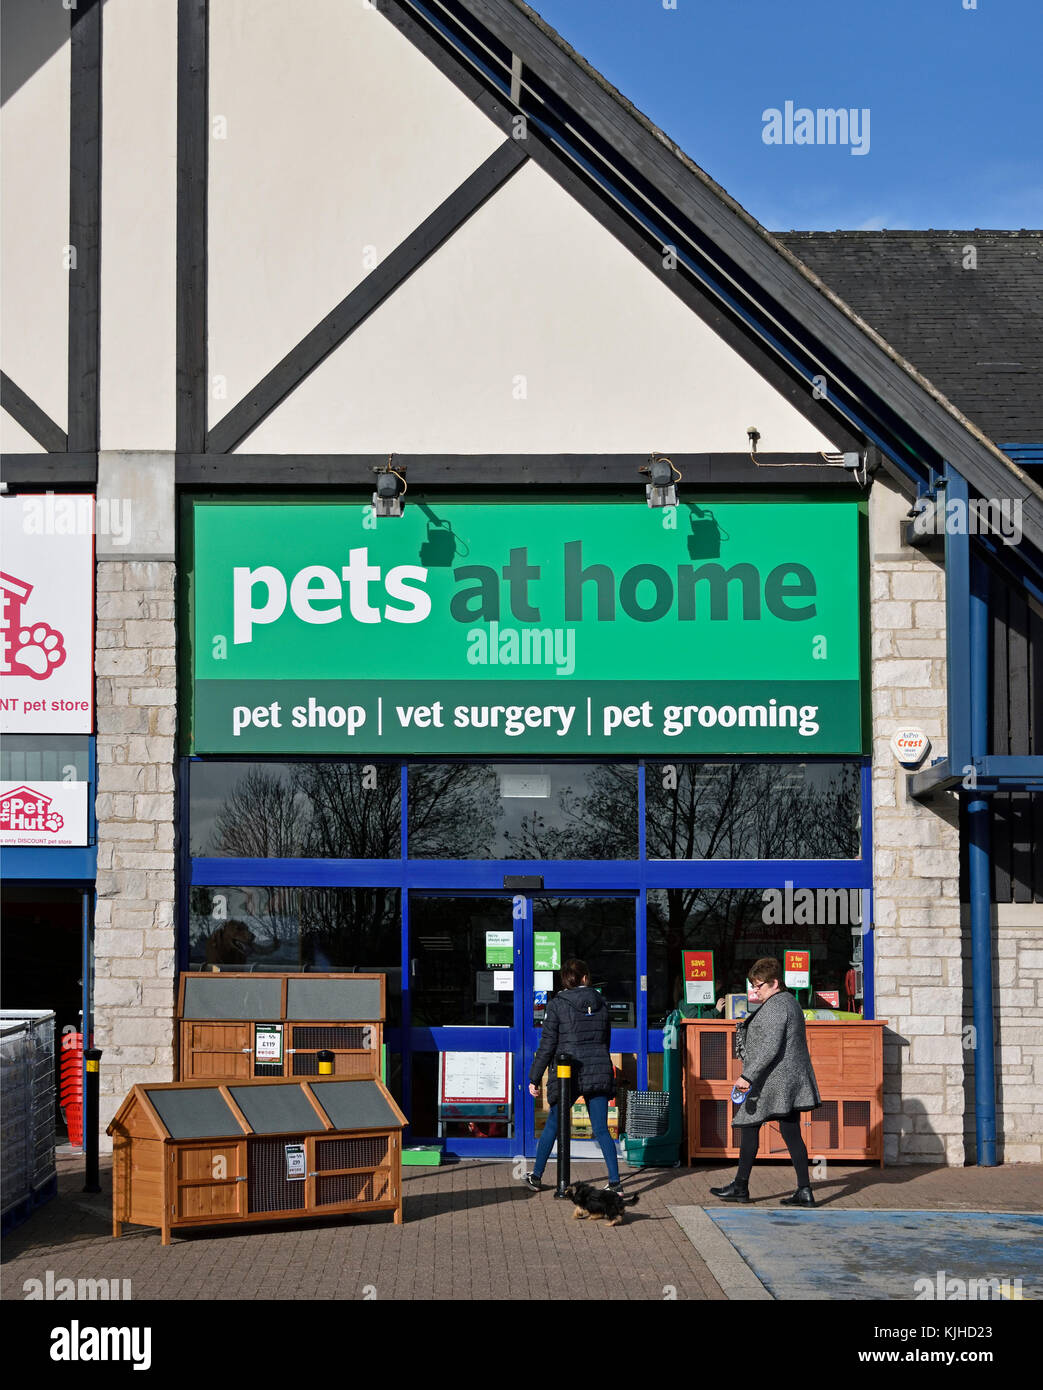 Customers with small dog at Pets at Home Store. The Old Showground, Kendal, Cumbria, England, United Kingdom, Europe. - Stock Image